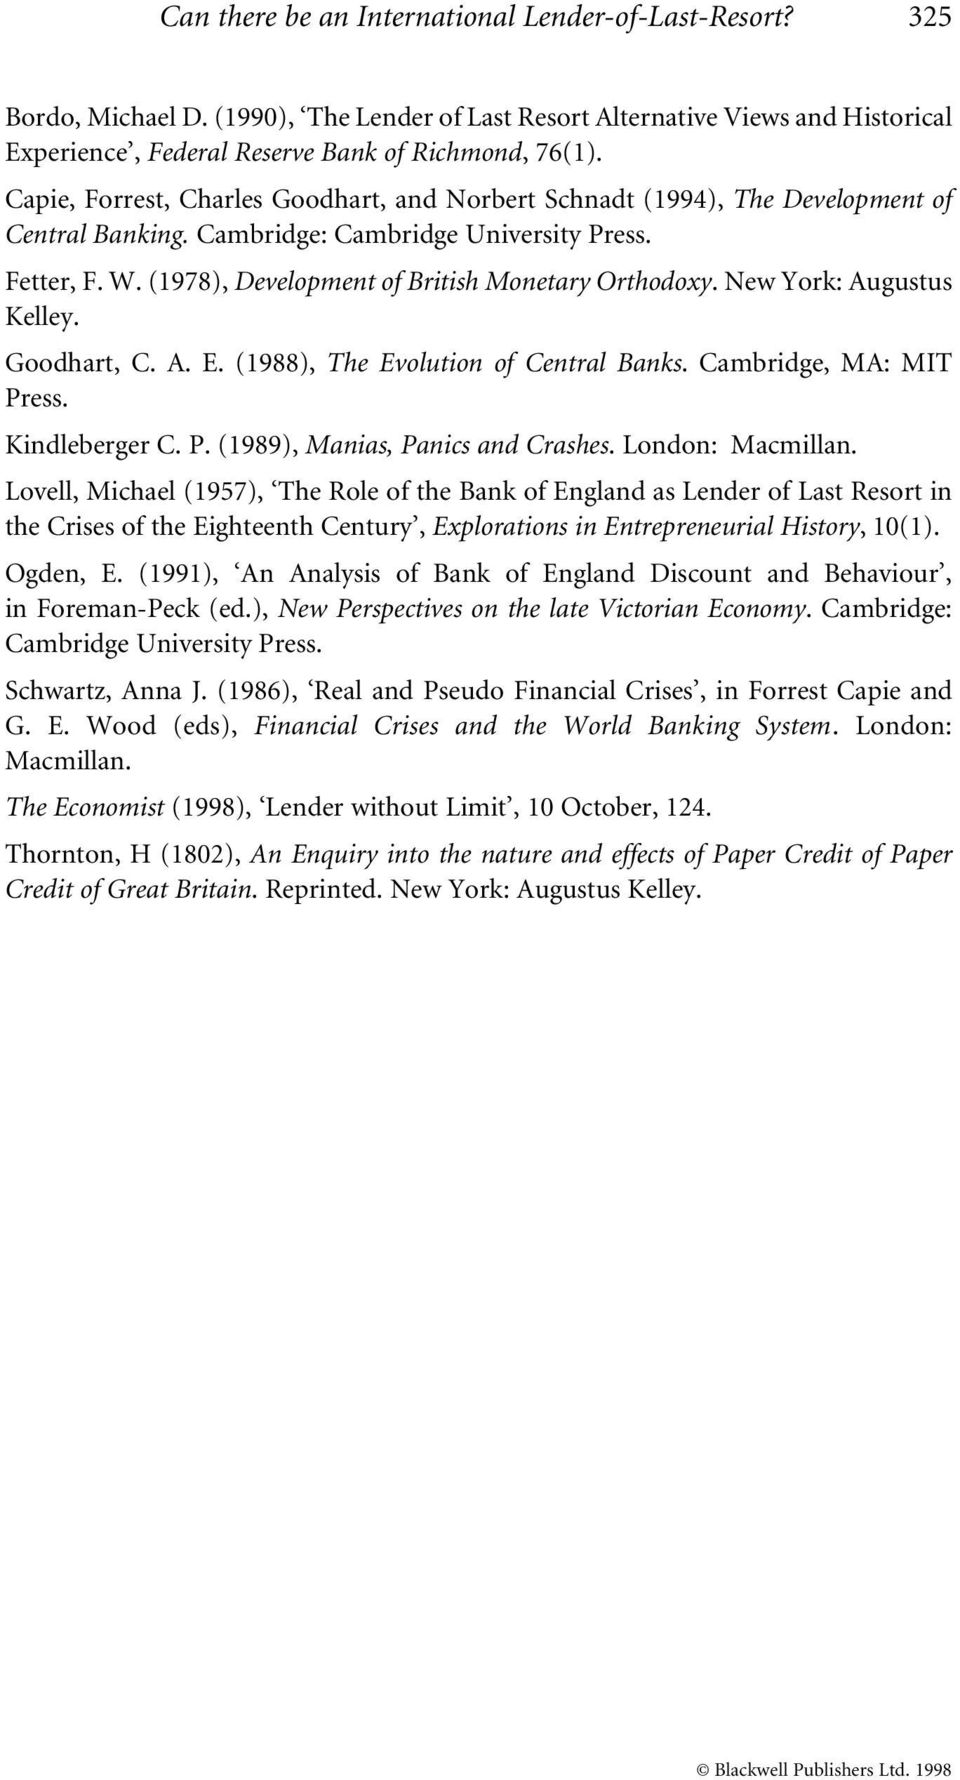 (1978), Development of British Monetary Orthodoxy. New York: Augustus Kelley. Goodhart, C. A. E. (1988), The Evolution of Central Banks. Cambridge, MA: MIT Press. Kindleberger C. P. (1989), Manias, Panics and Crashes.